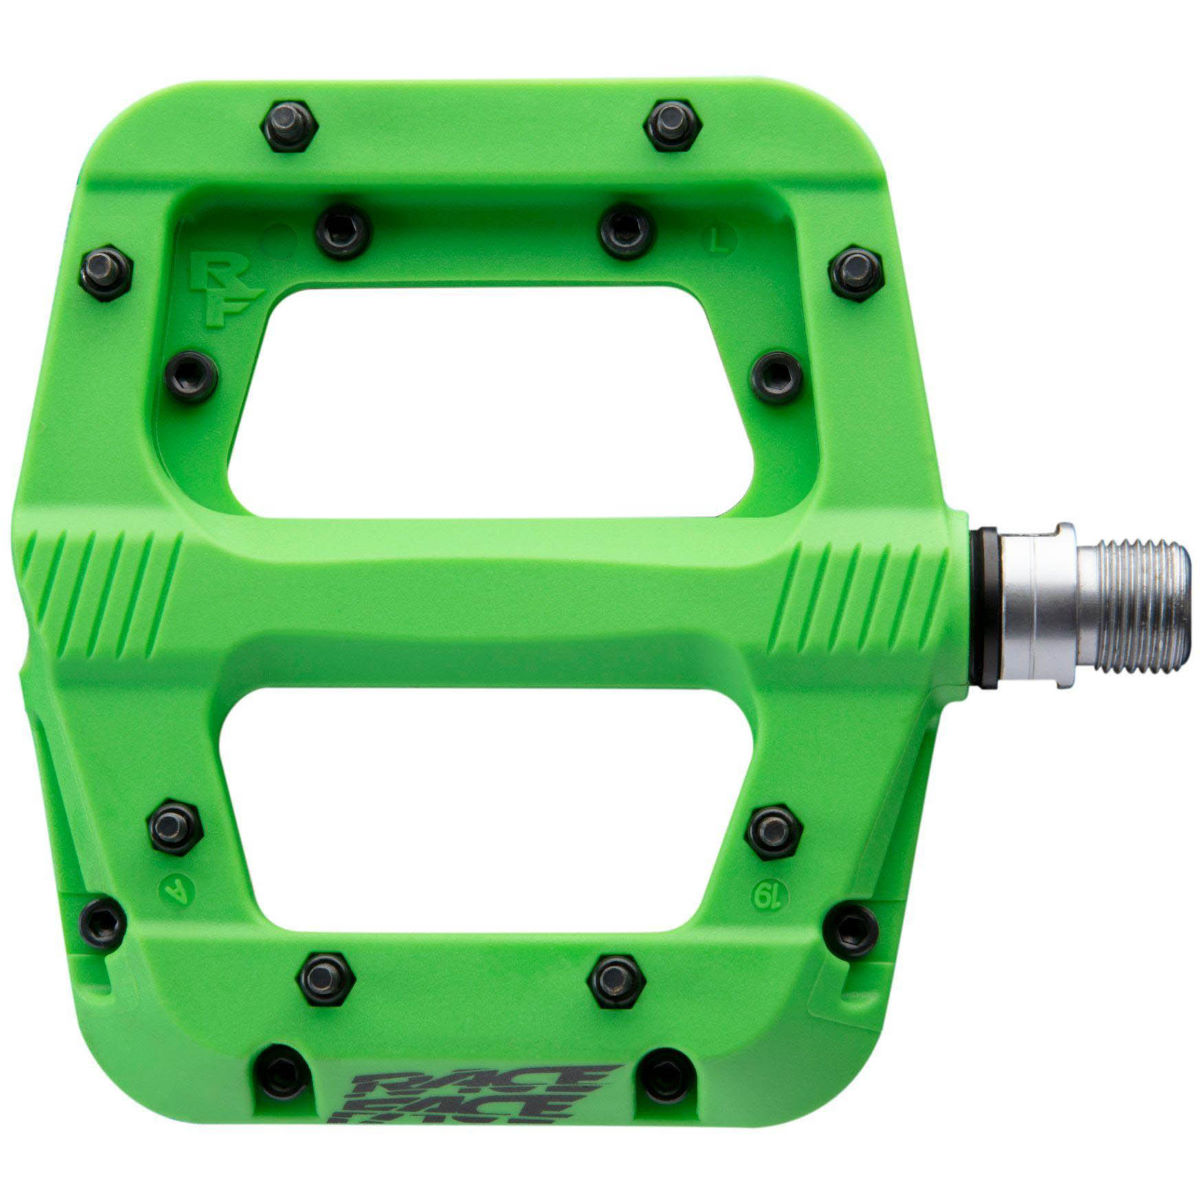 Race Face Chester Pedals - One Size Green  Flat Pedals